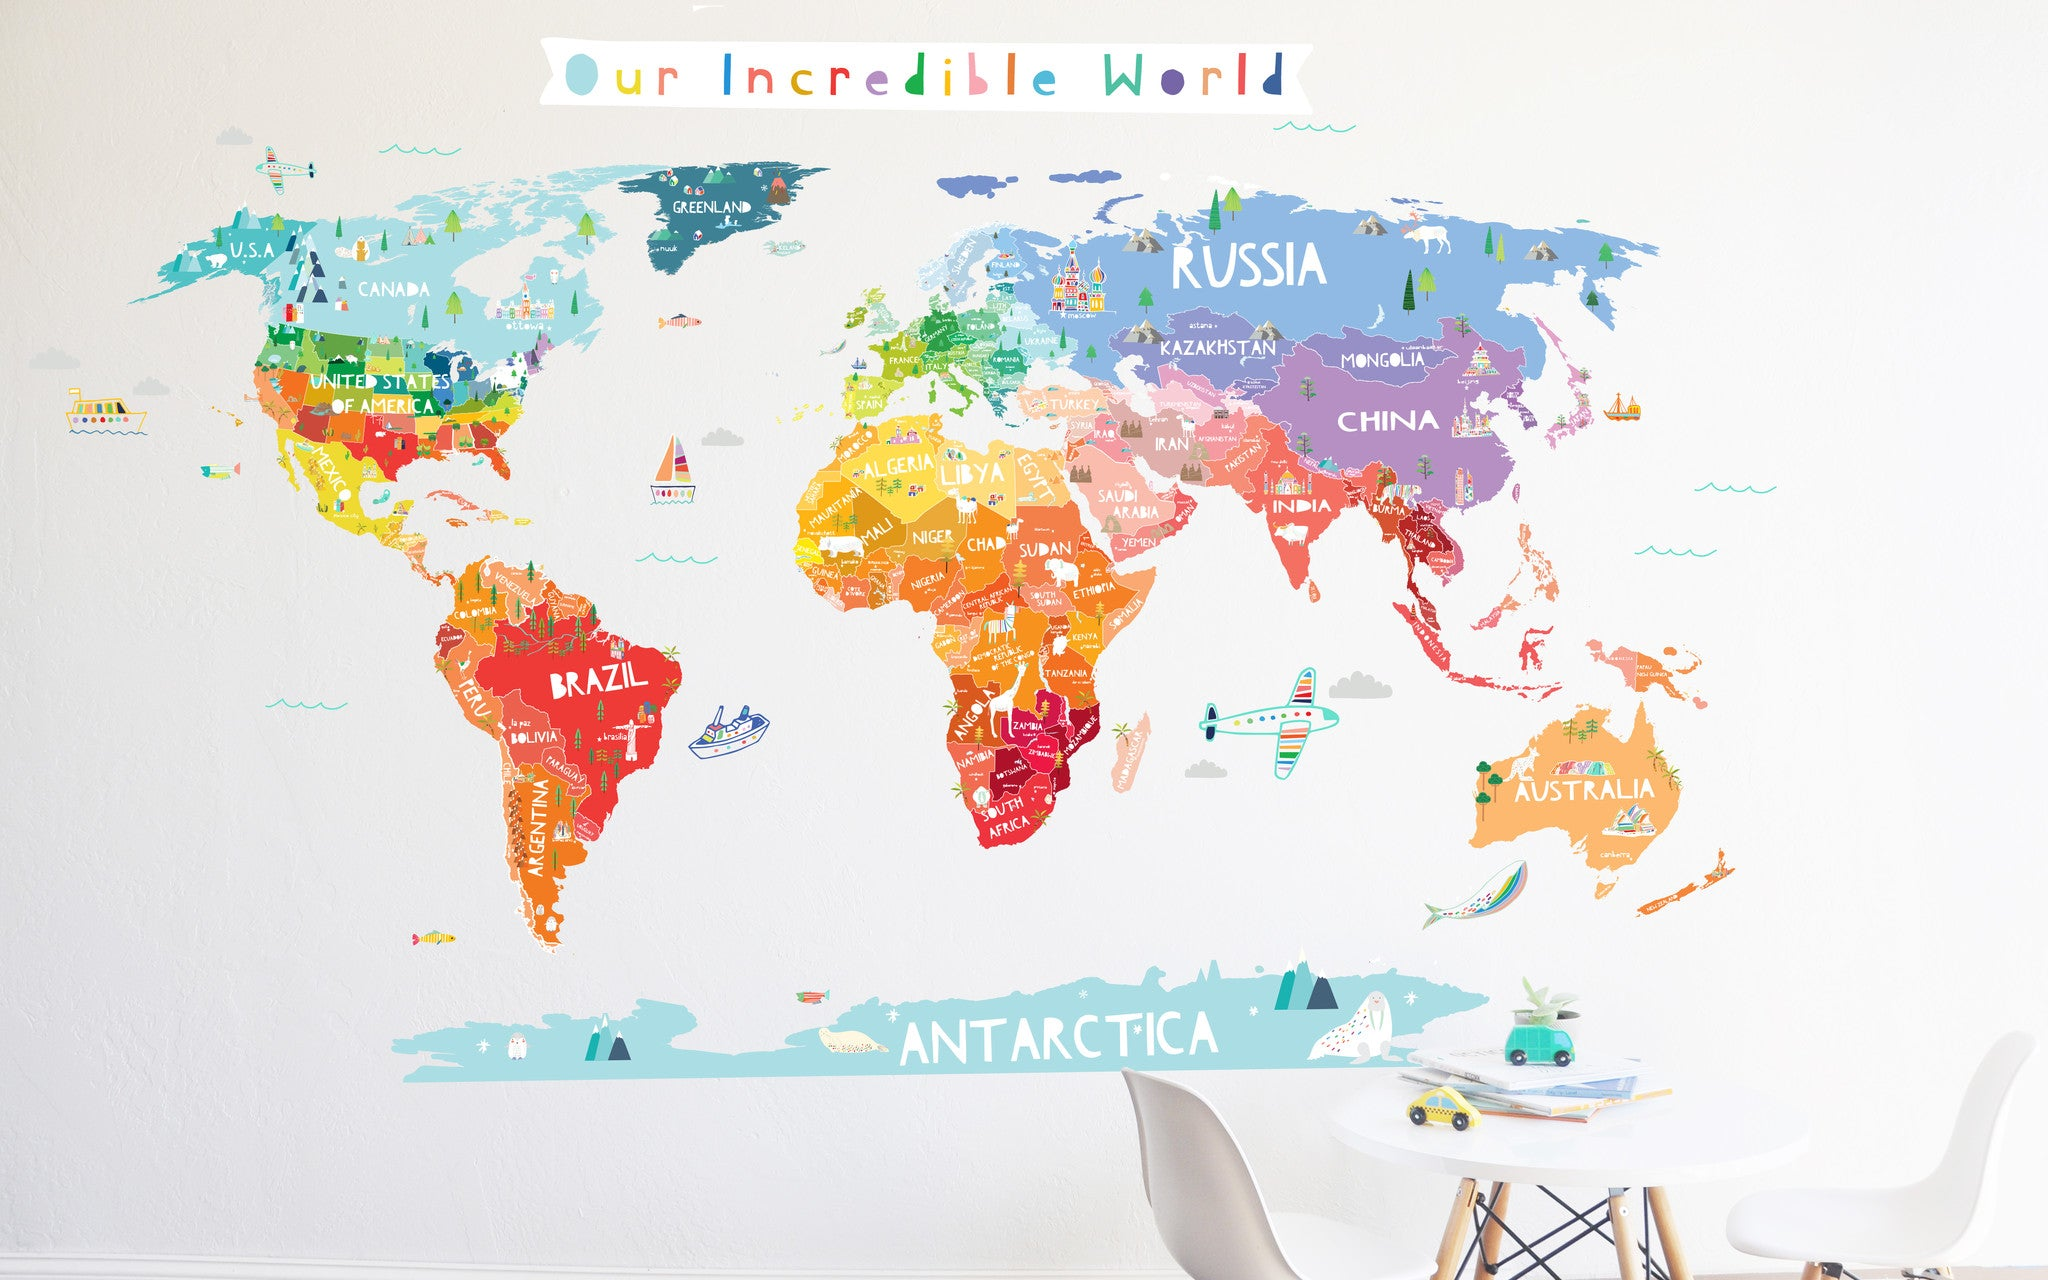 Our incredible world die cut world map wall decal with our incredible world die cut world map wall decal with personalization stickers amipublicfo Images